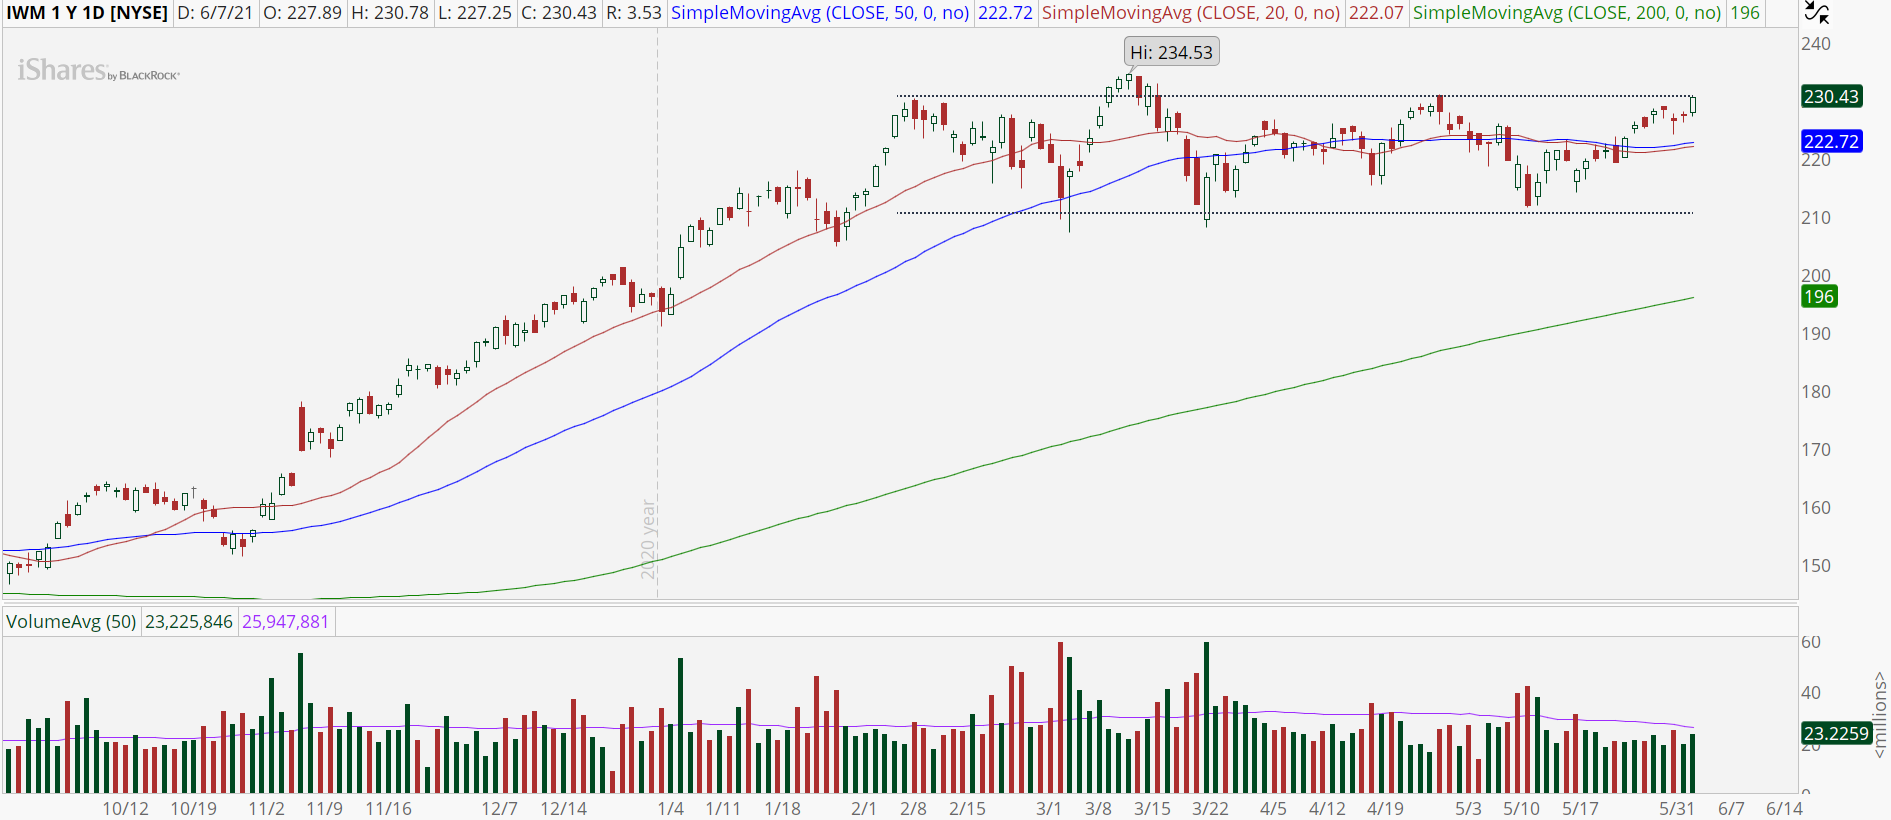 Russell 2000 ETF (IWM) with potential trading range breakout